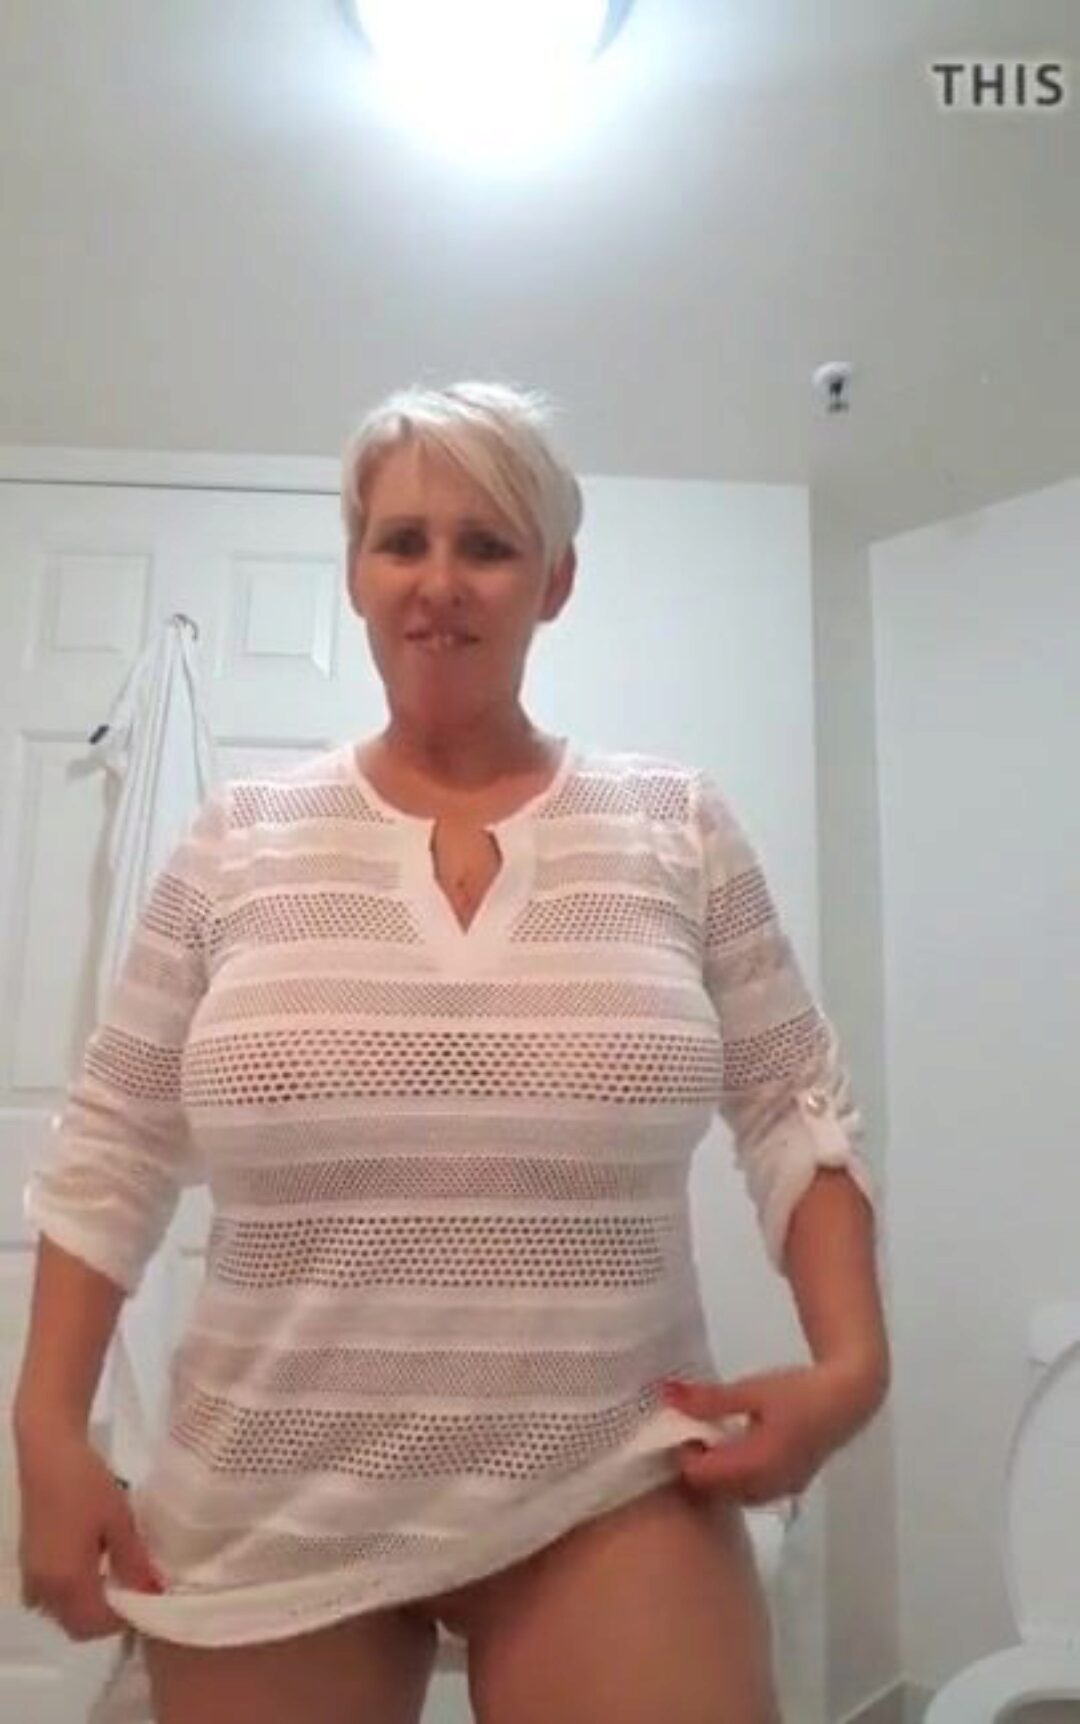 My Friends Mum: Xnxx for Free HD Porn Video f3 - xHamster Watch My Friends Mum tube hump movie for free-for-all on xHamster, with the best bevy of British Xnxx for Free & Mother Friend HD porno video gigs